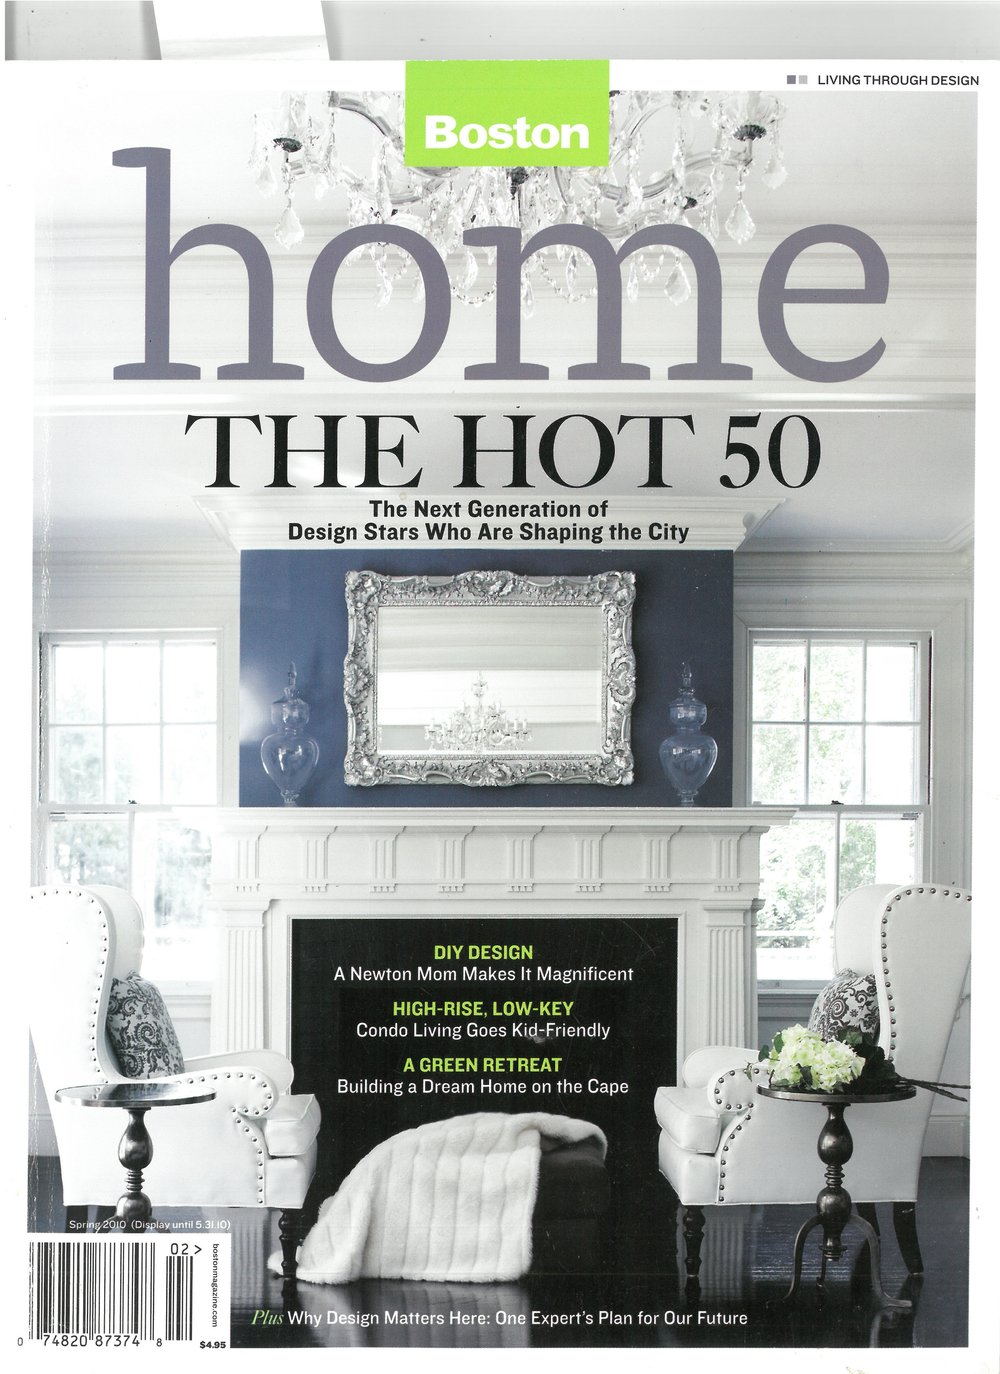 Boston Home cover.jpg